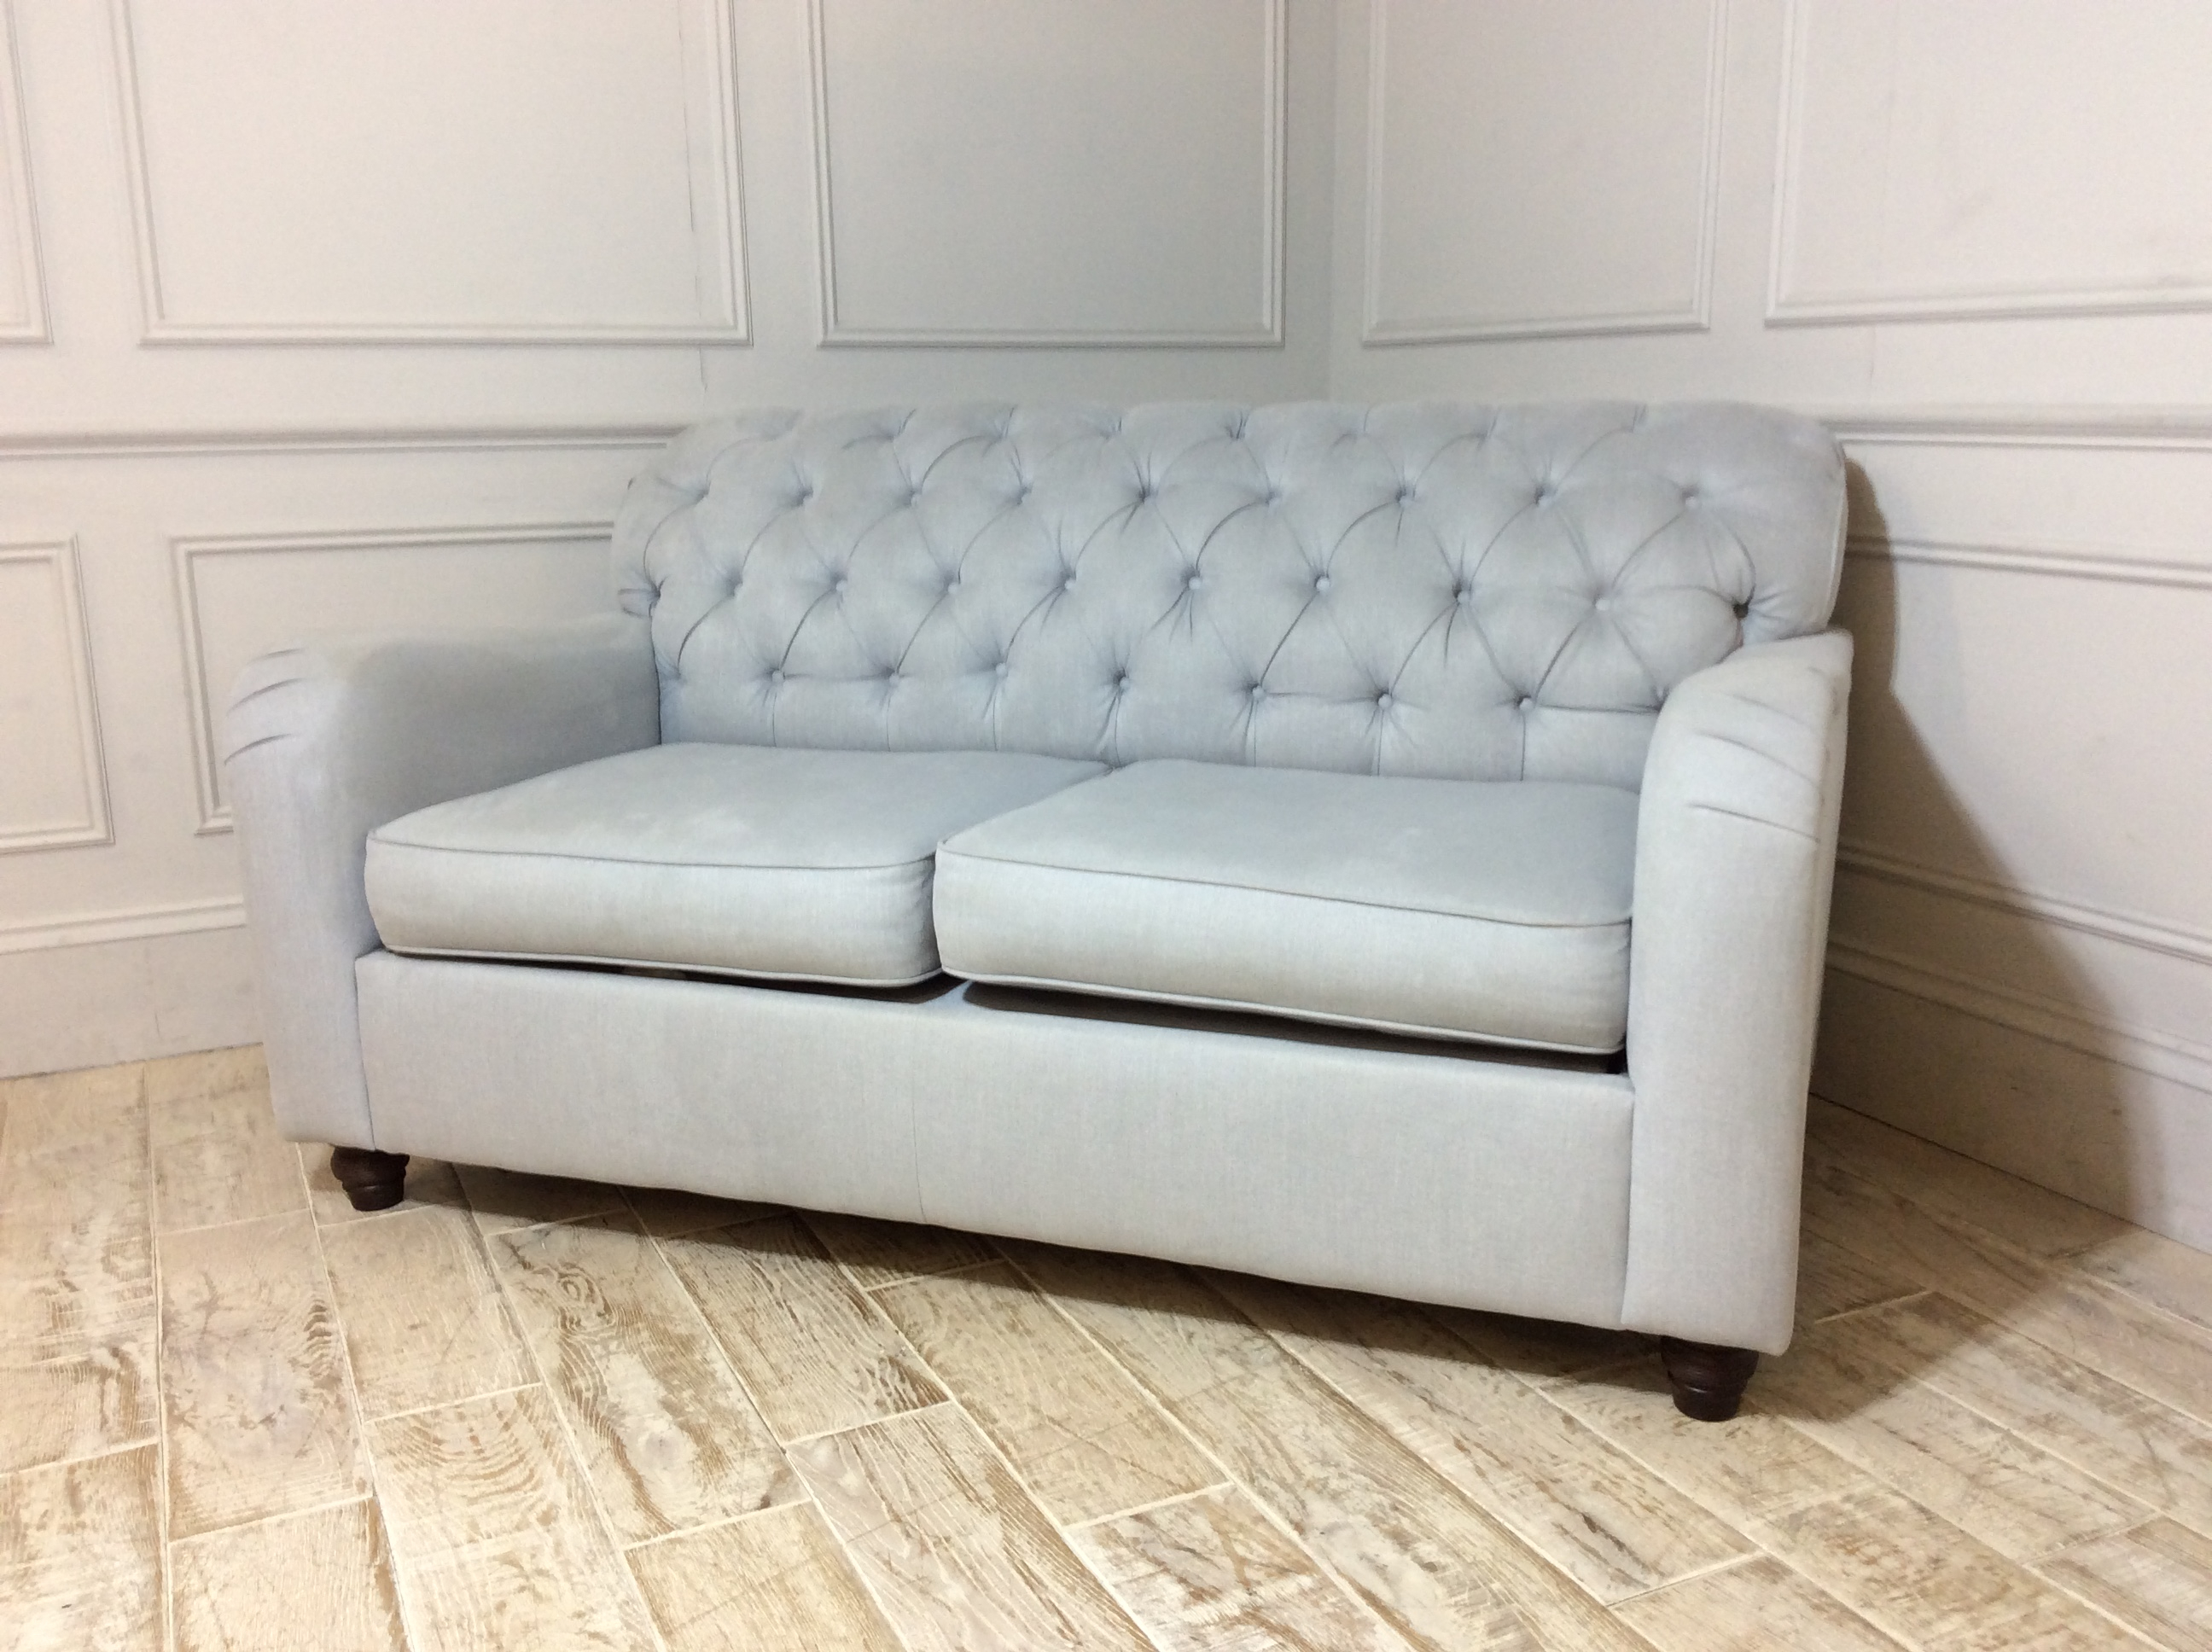 Bakewell 2 Seater Fabric Sofa Bed - Mist